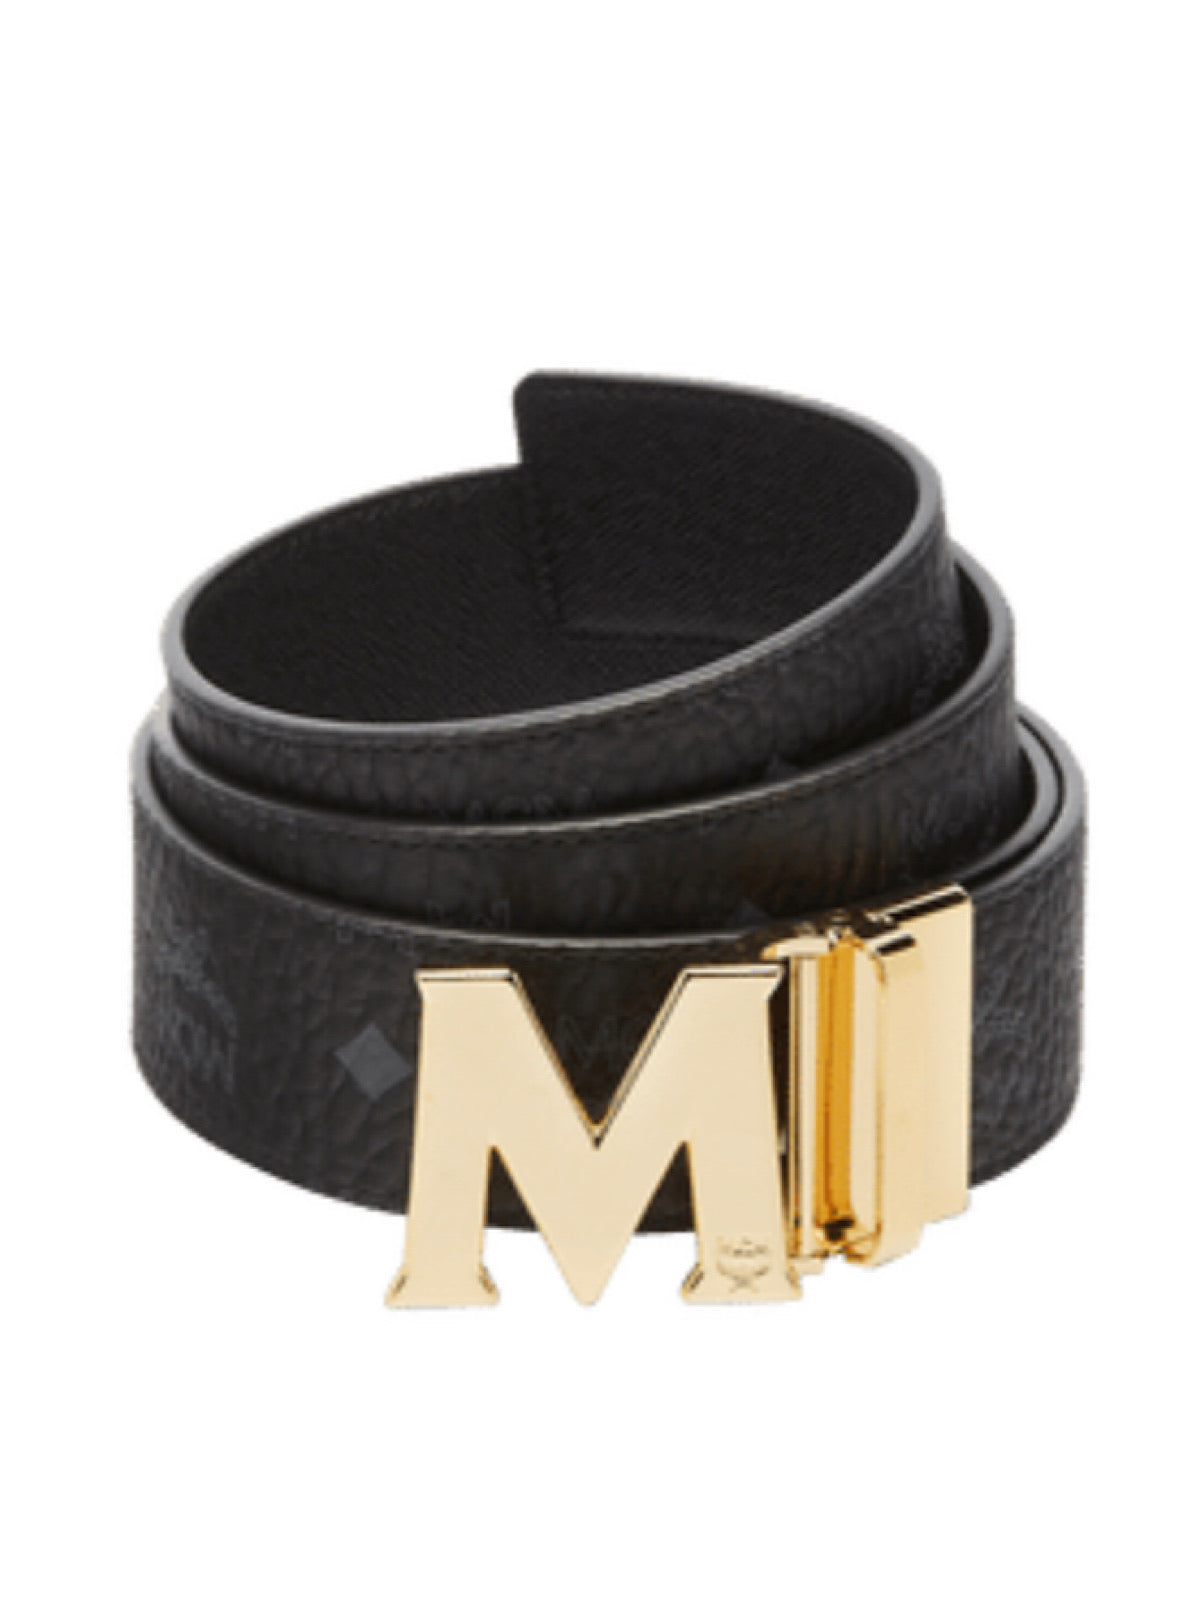 MCM Belt - Reversible - Black And Gold